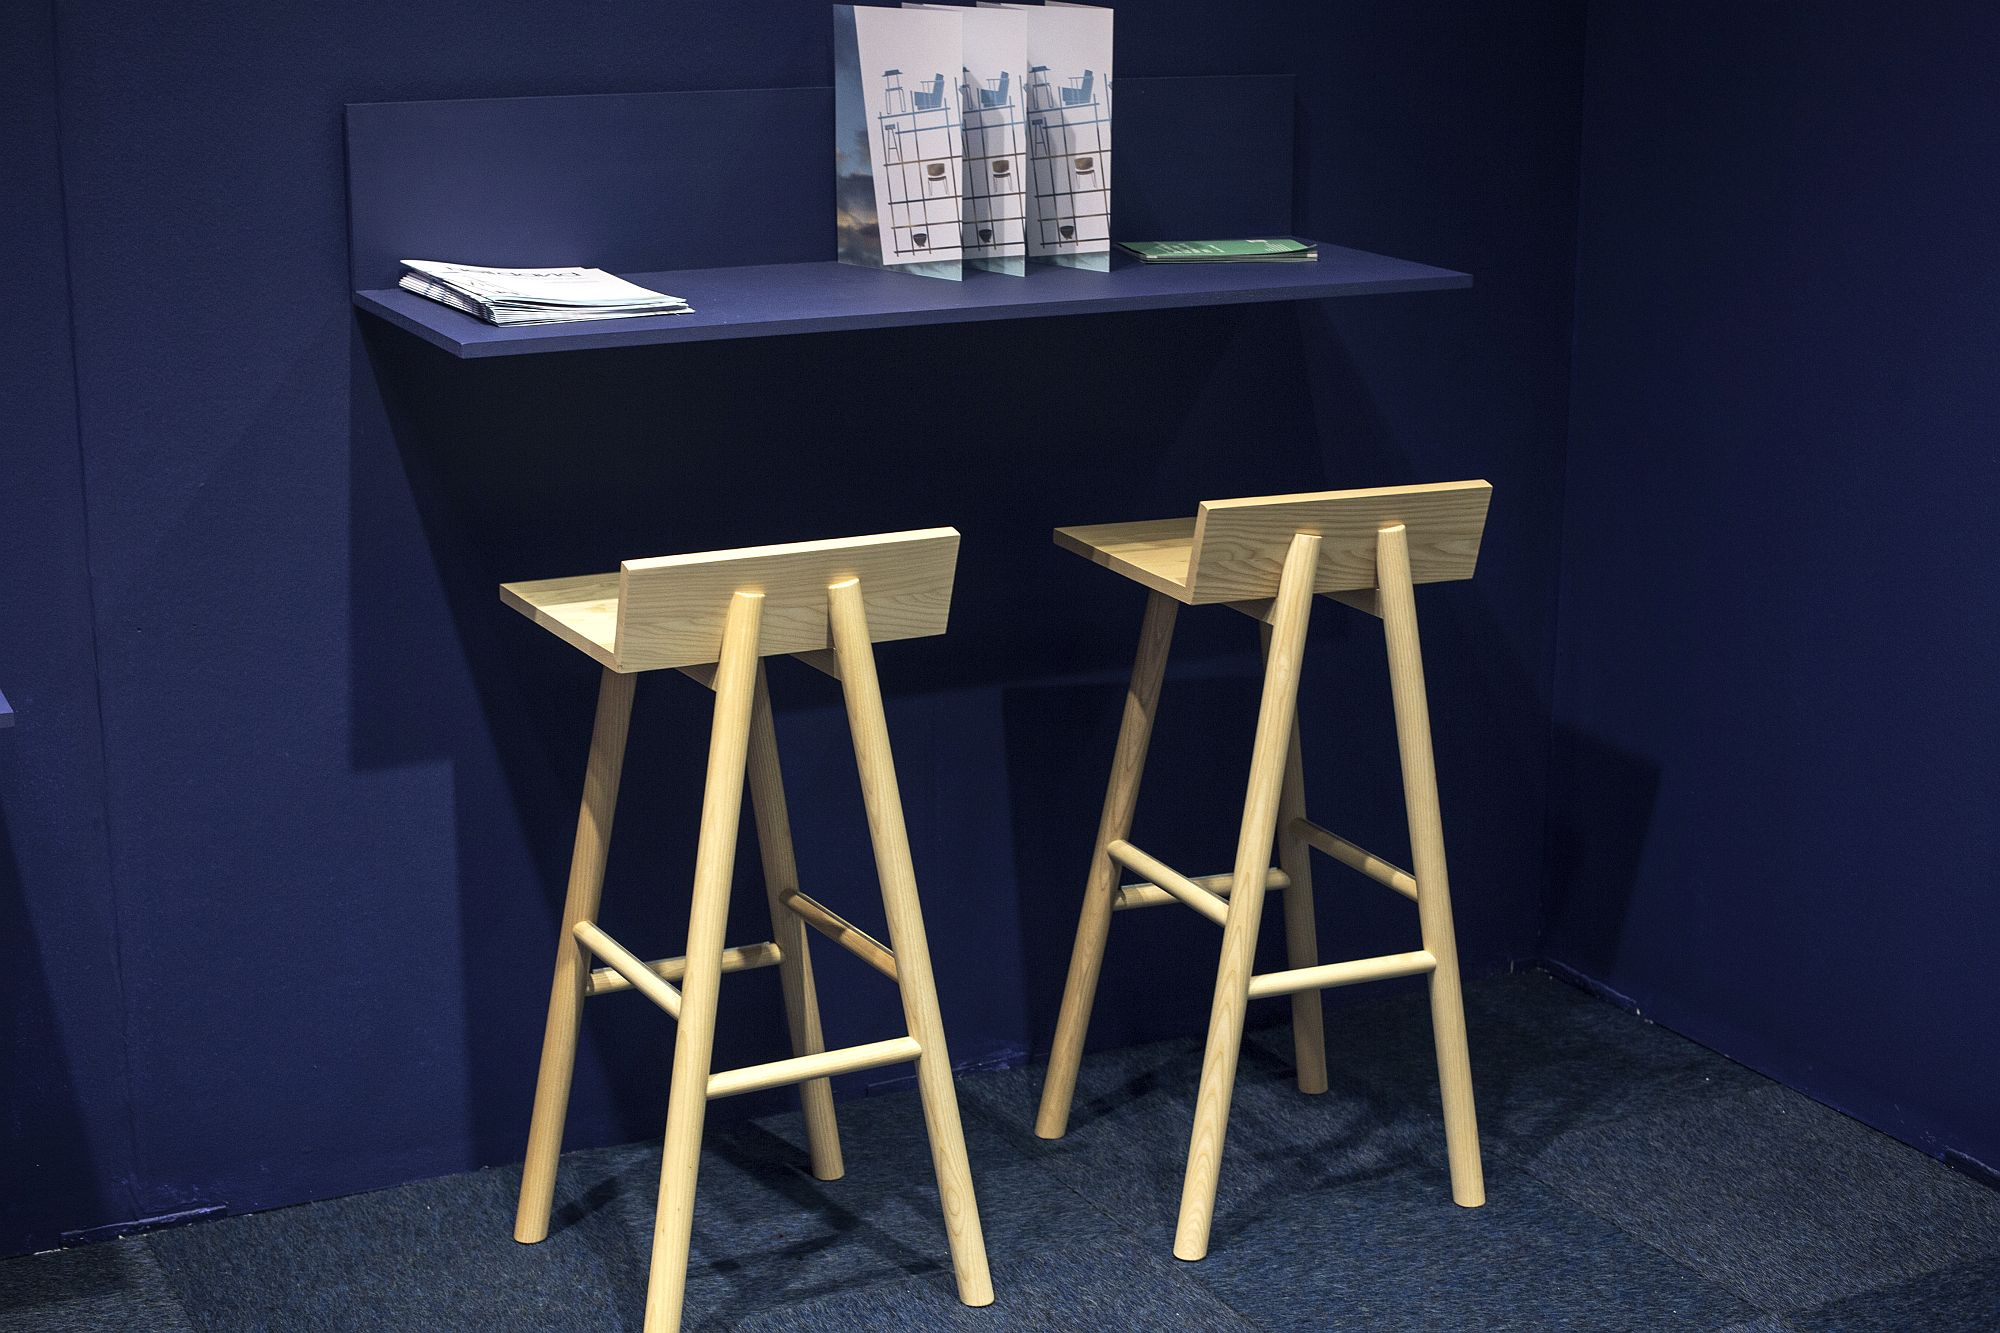 Even a minimal and sleek countertop or shelf can be turned into workspae with the right seat